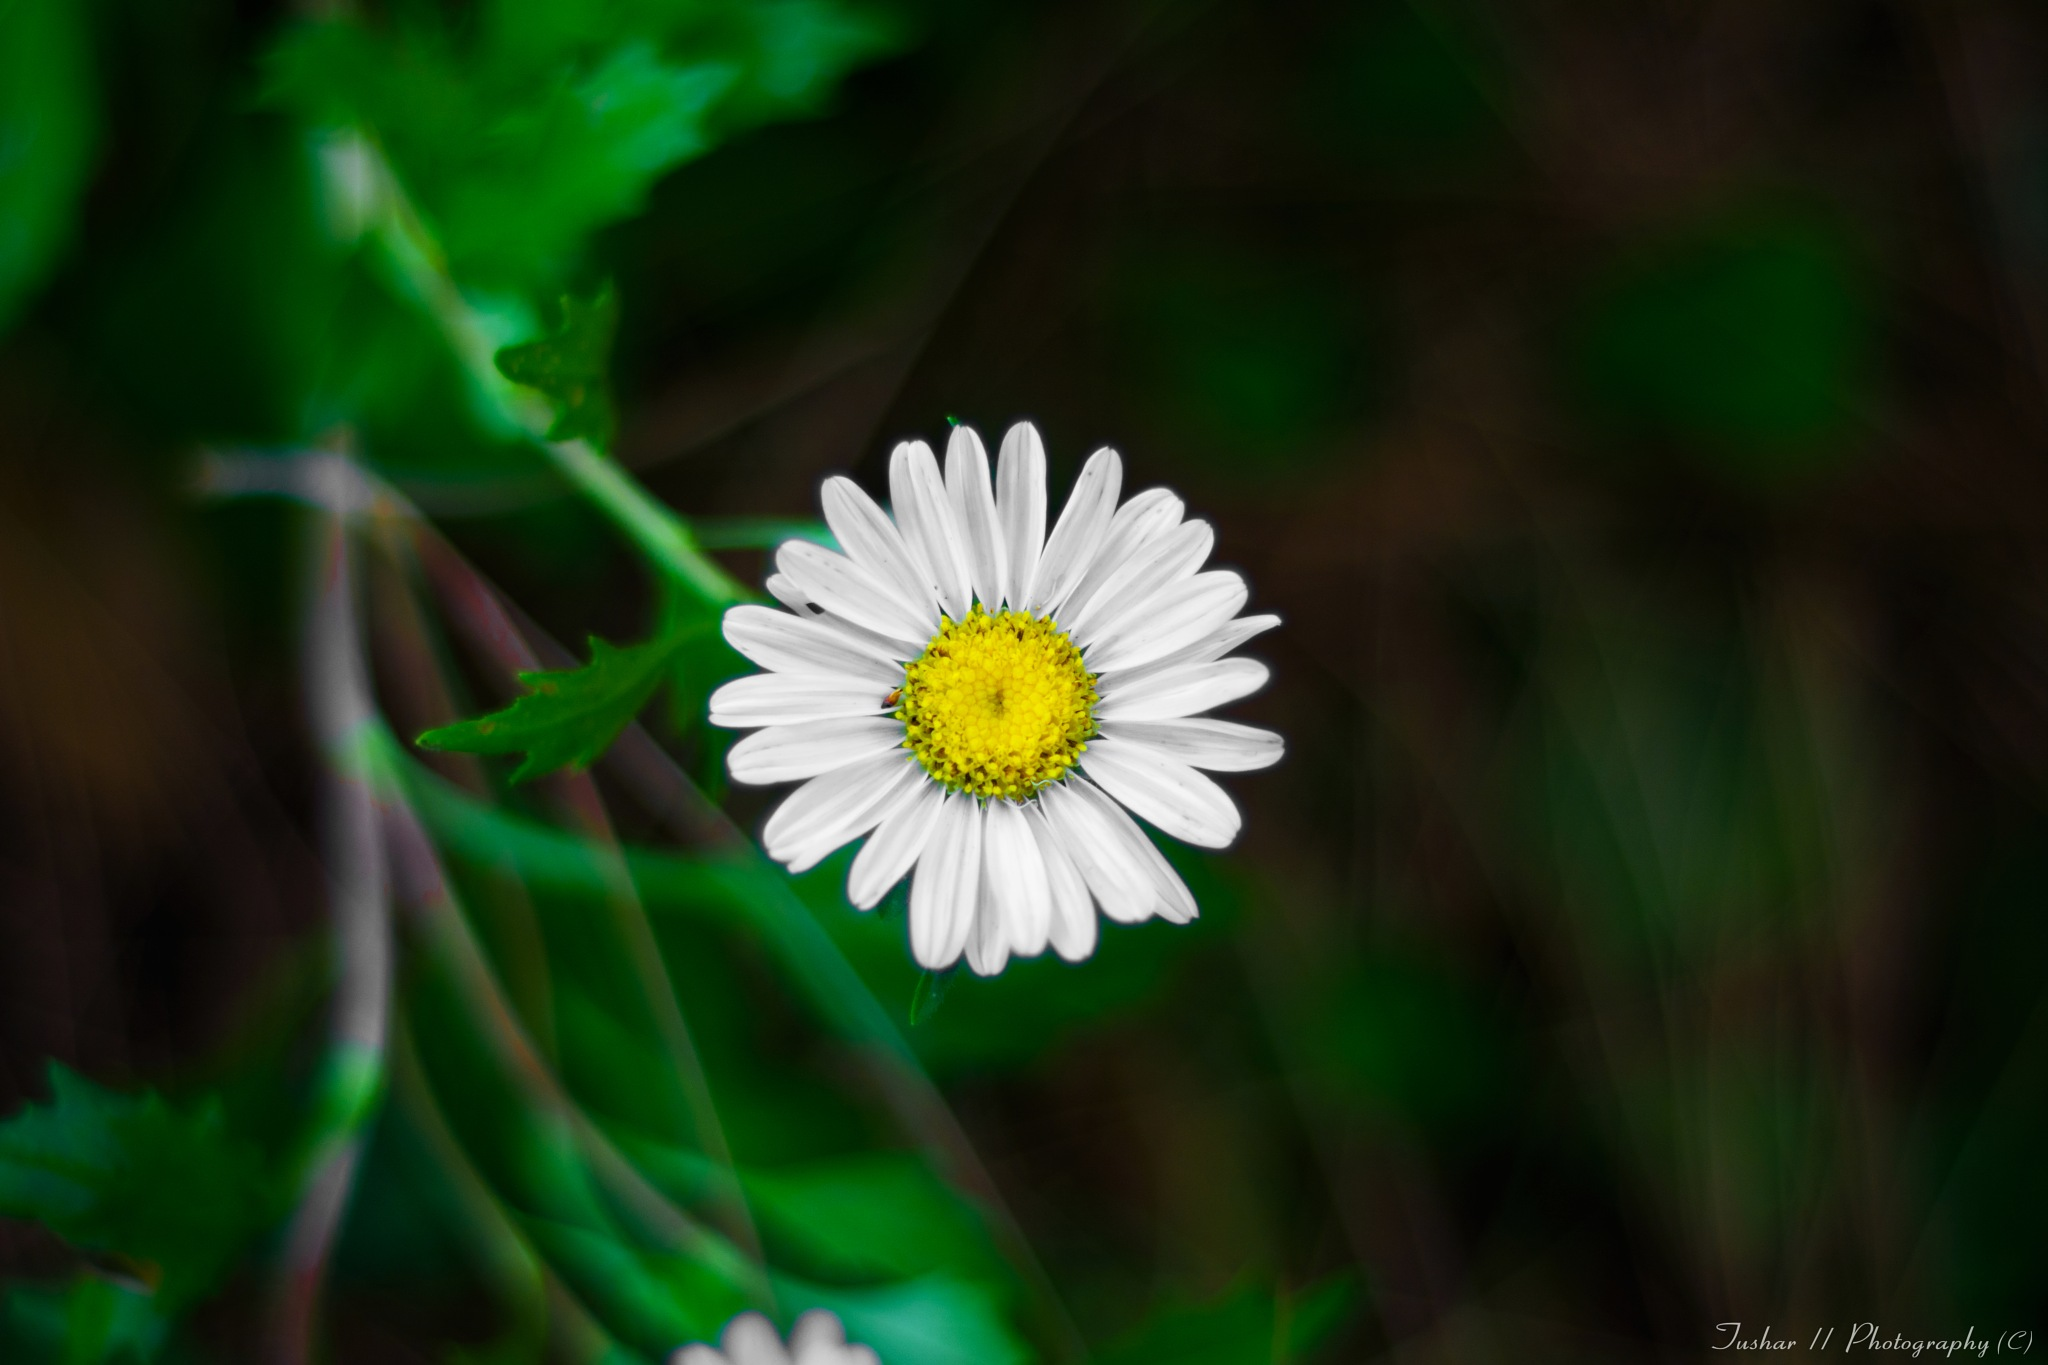 Politeness is the flower of humanity. by Tushar Thakur